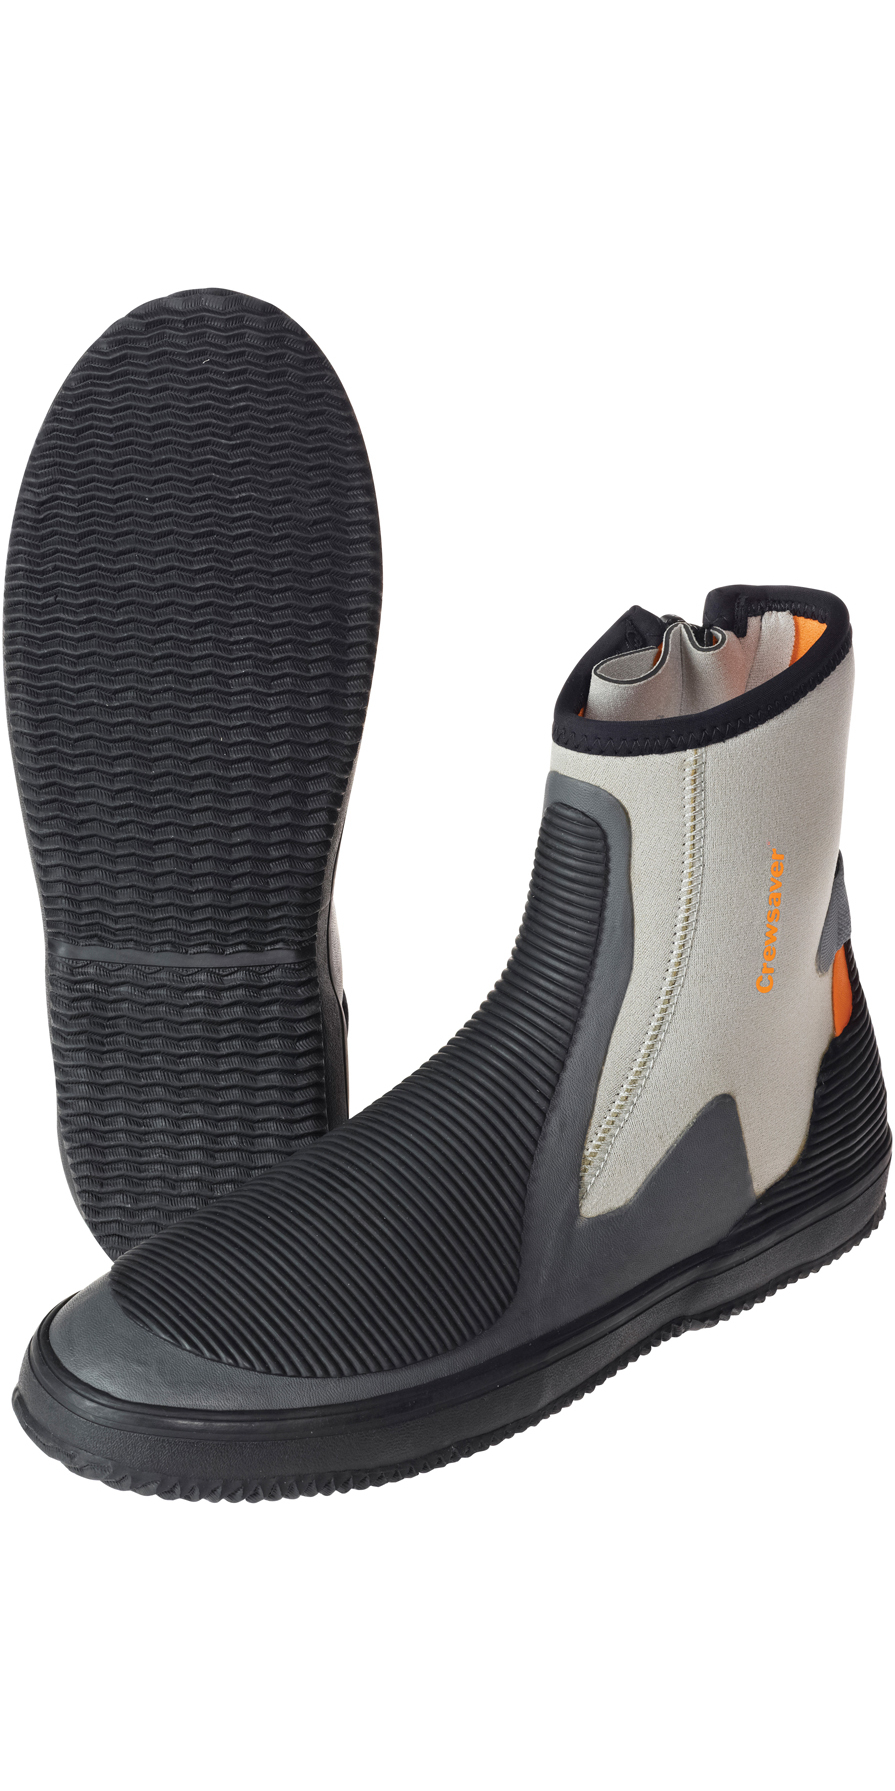 Phase 2 Neoprene Zipped Boot 6914